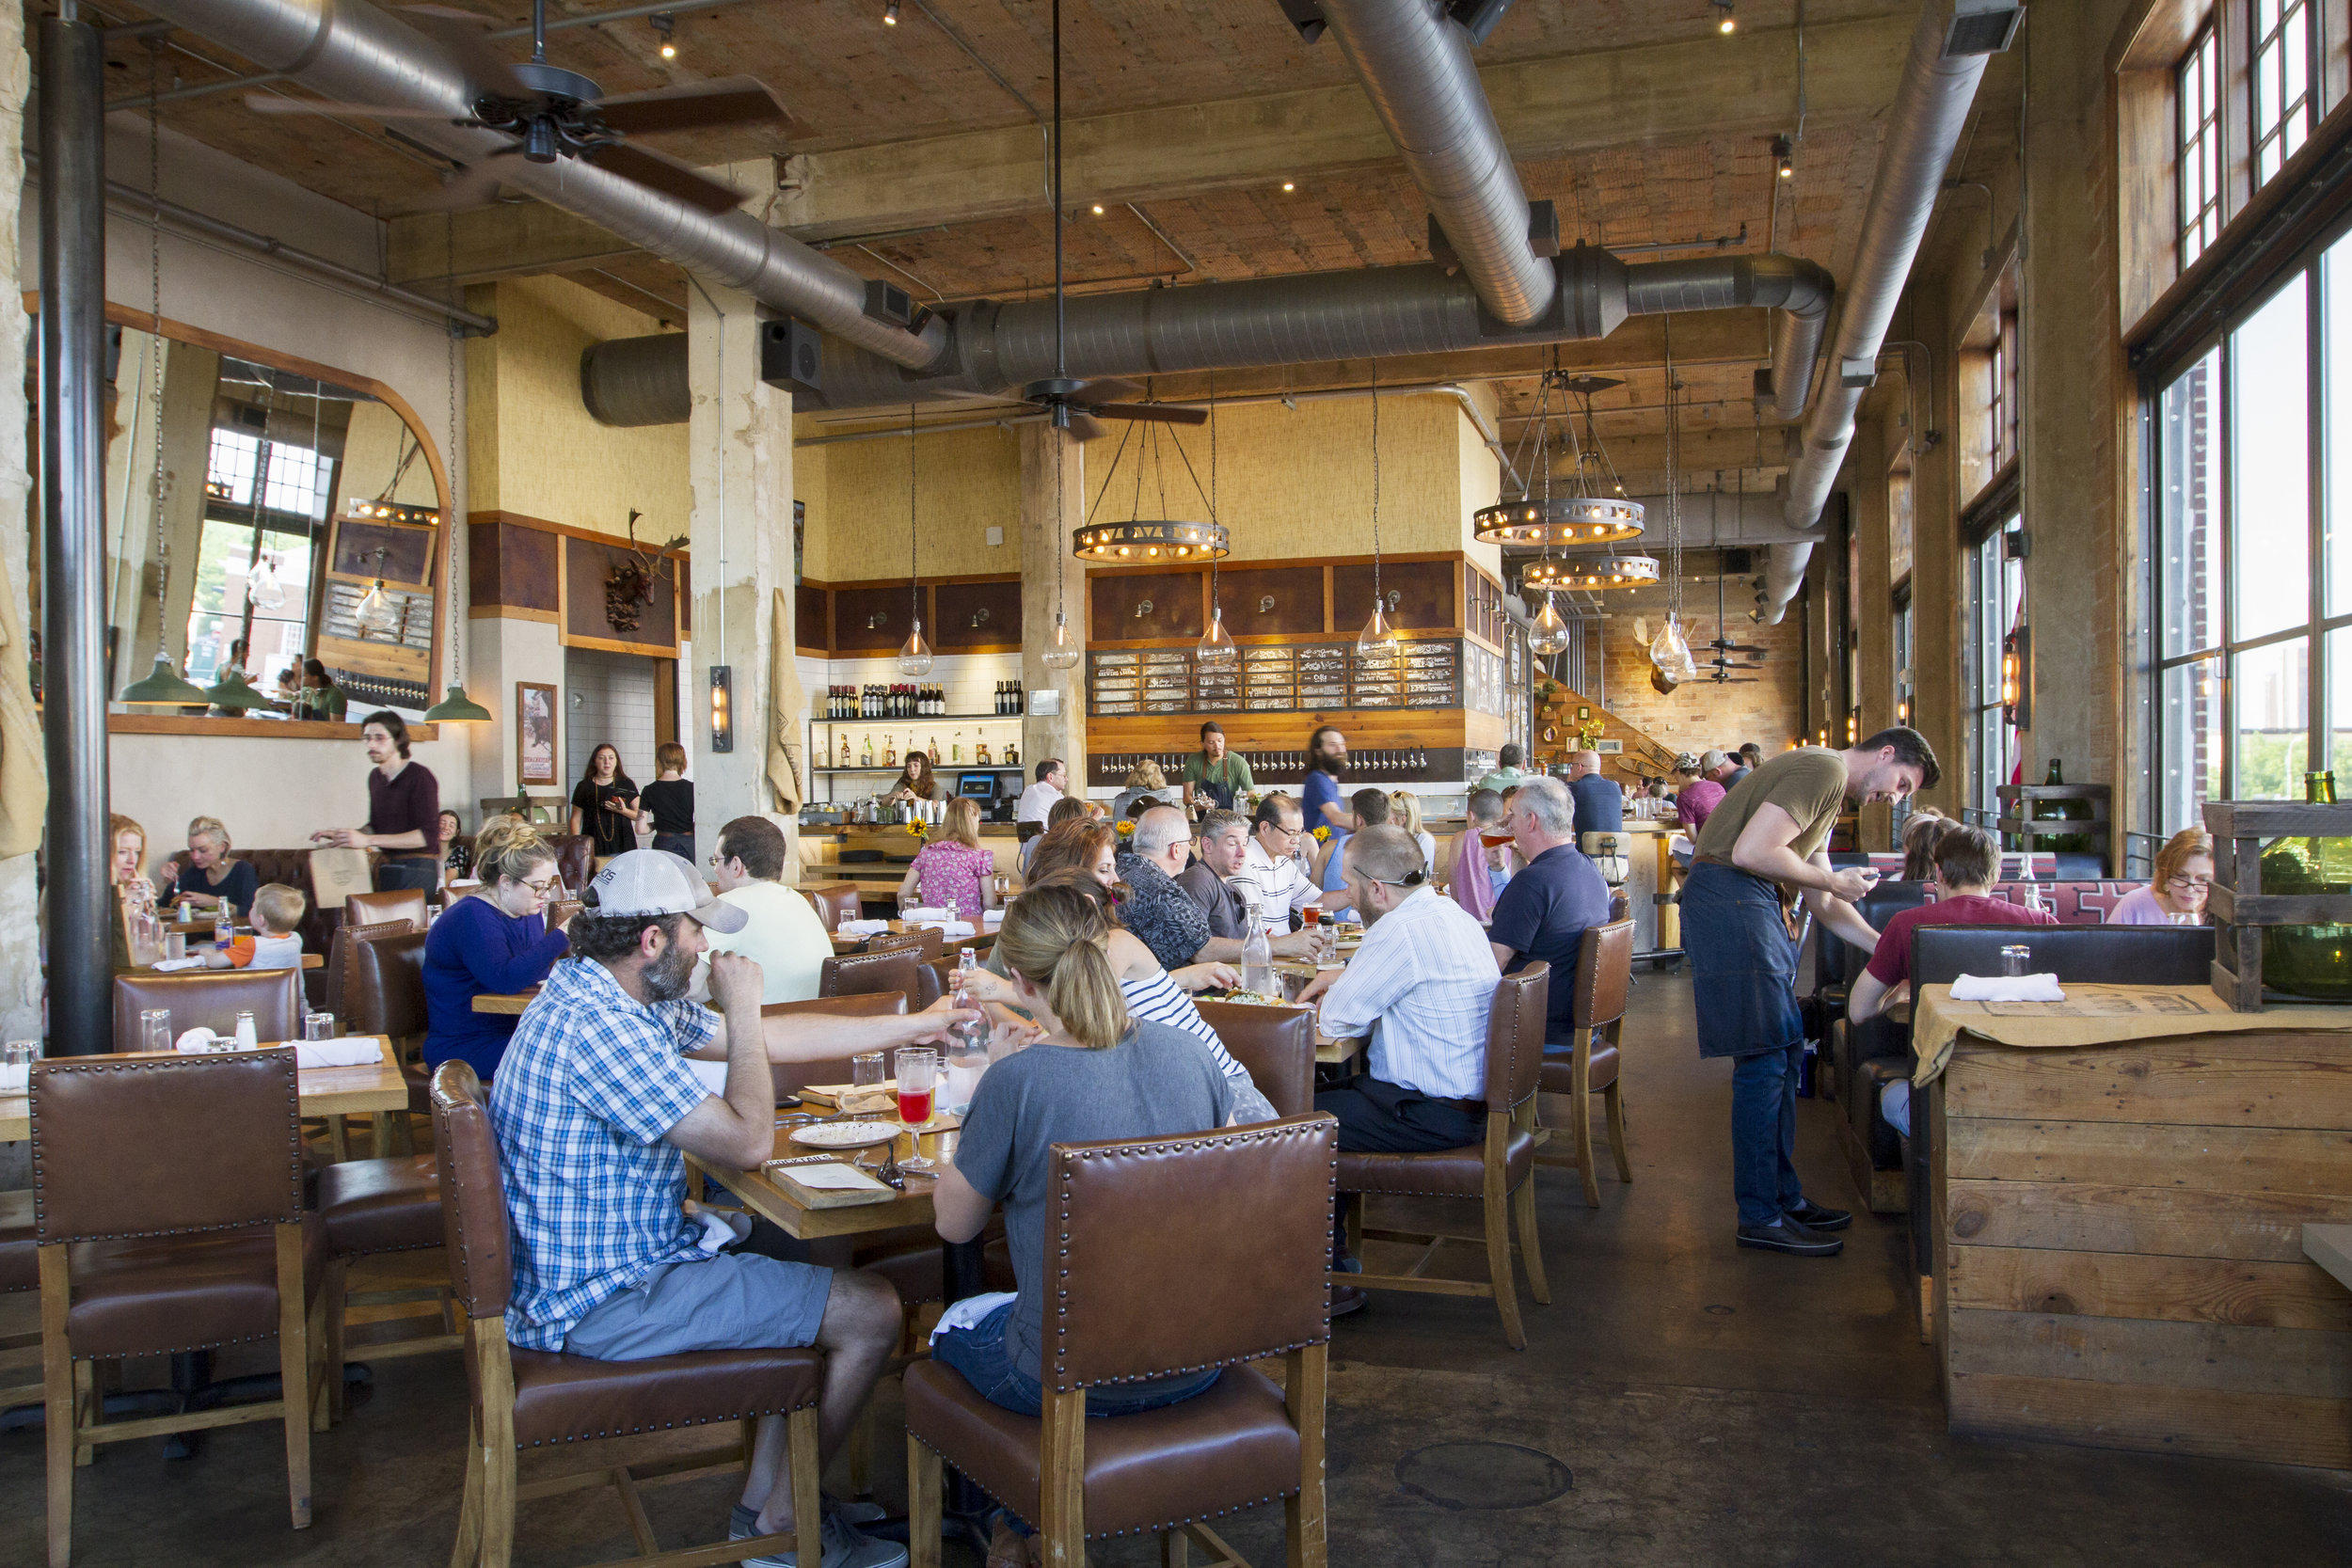 Dine Locally. - No matter where you look, Downtown Denton has a unique dining experience waiting for you that has something special in store for everyone in the family. Enjoy DFW's favorite burger at Barley and Board, or a unique cocktail and tapas from 940's.